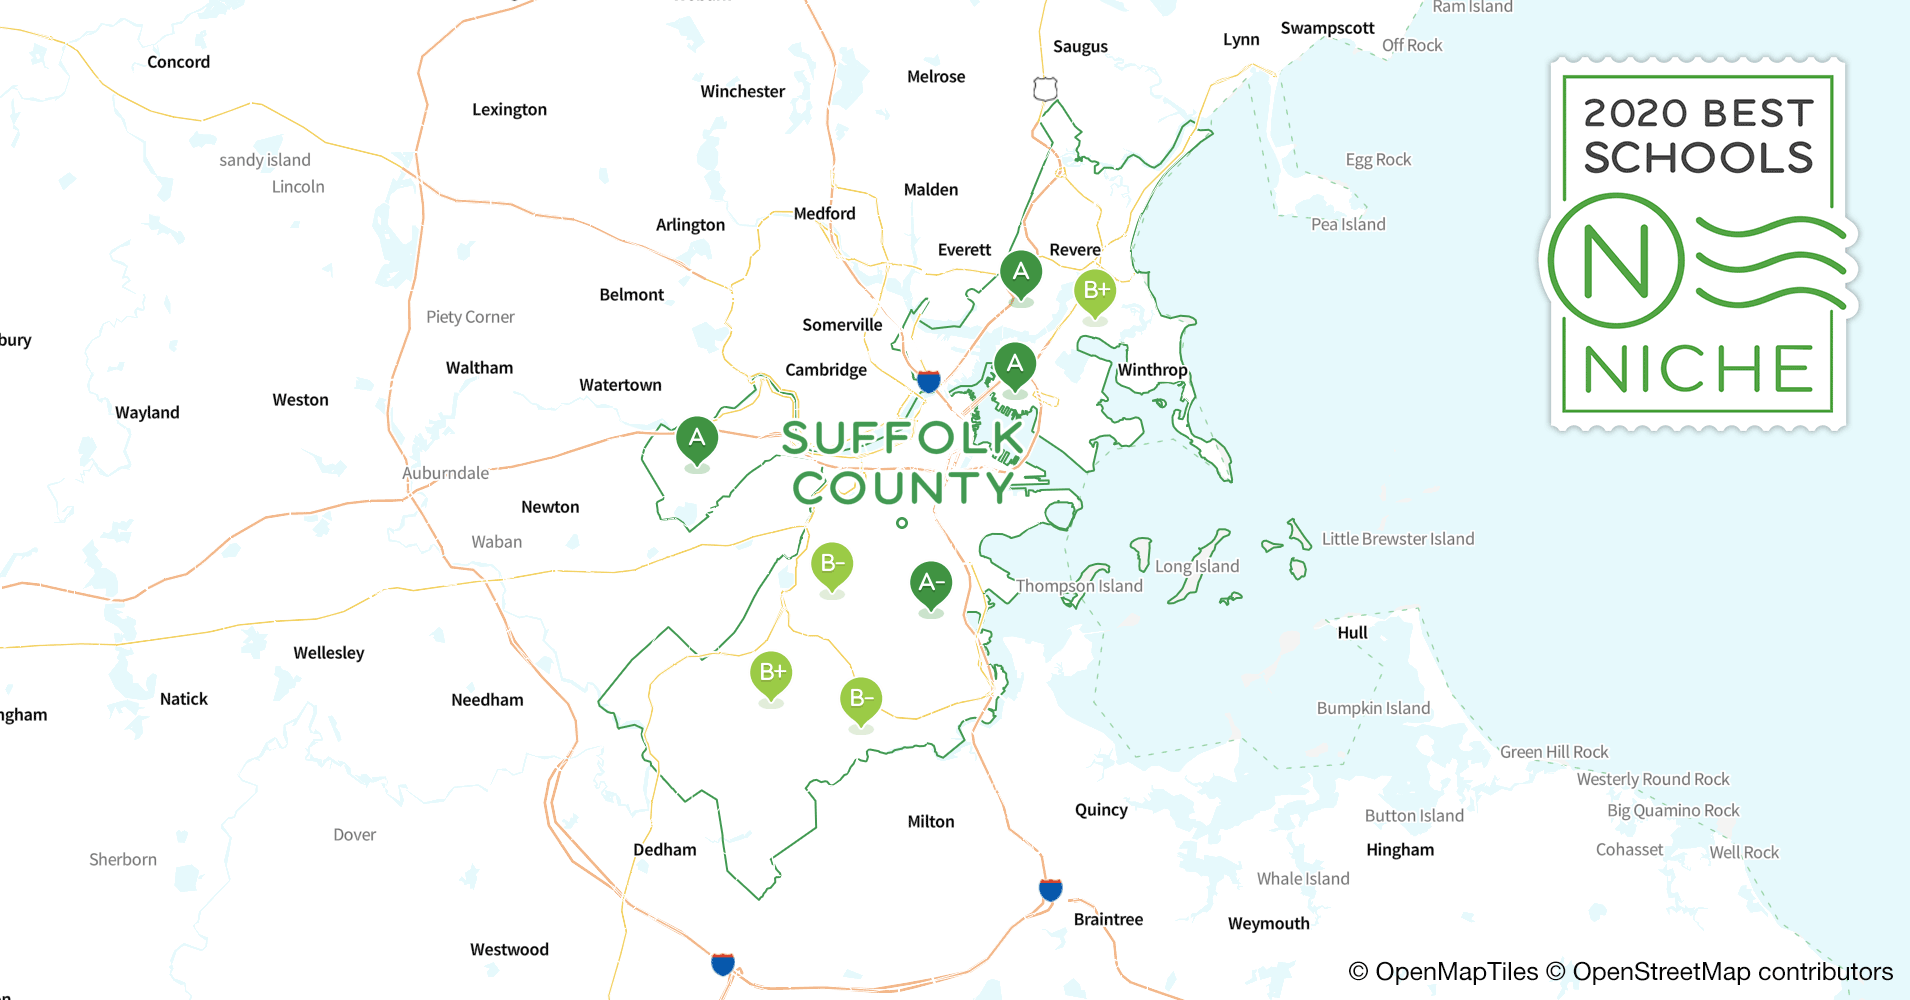 school districts in suffolk county  ma